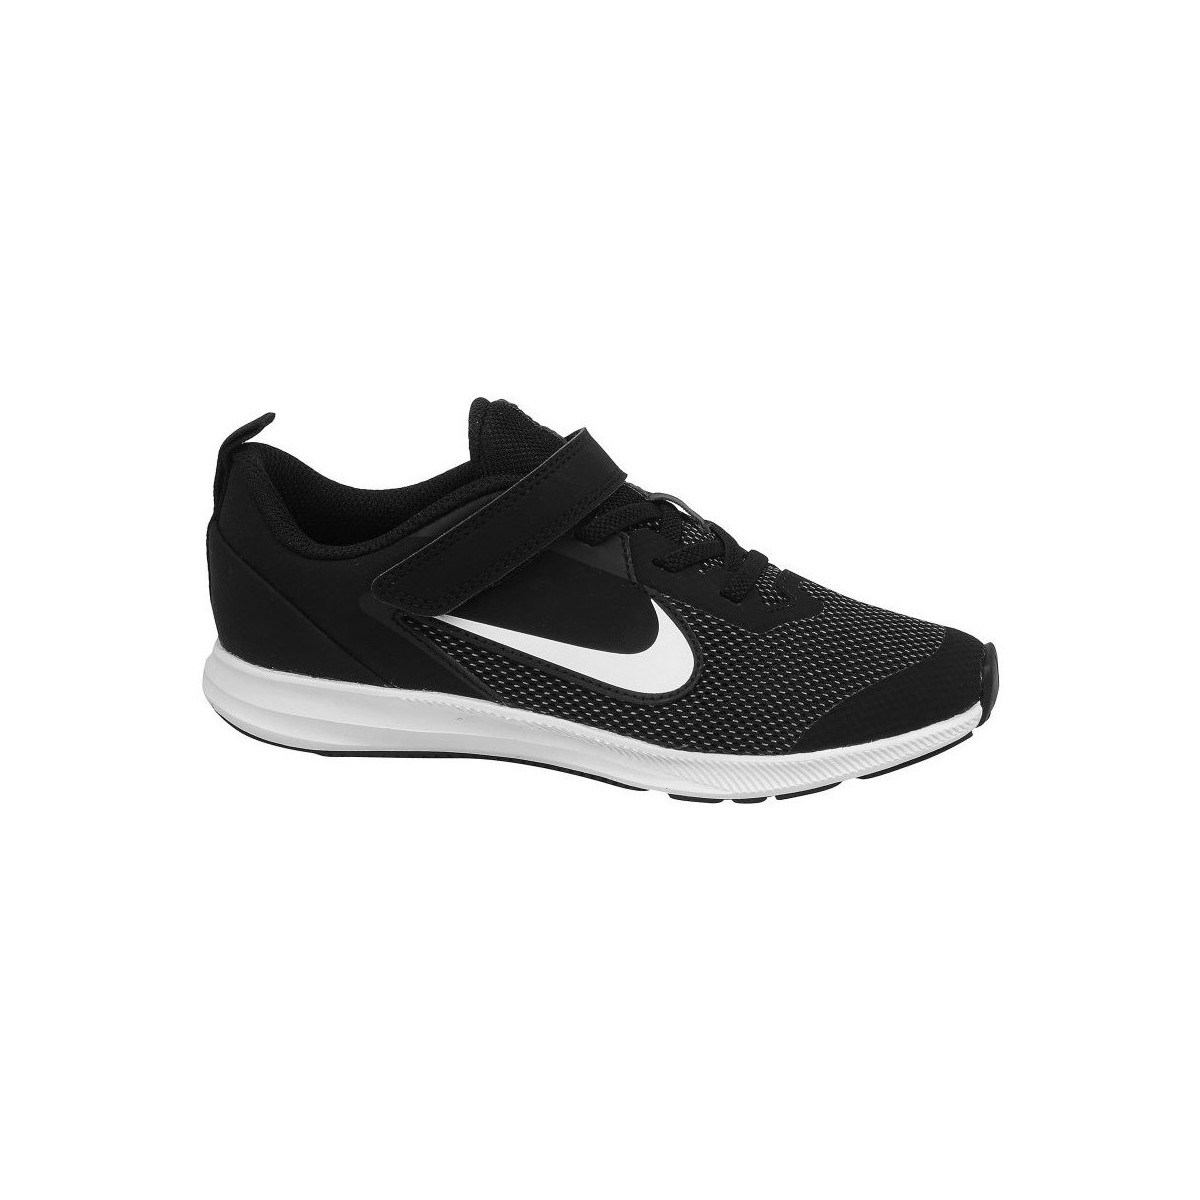 Sneakers Nike  Downshifter 9 Psv